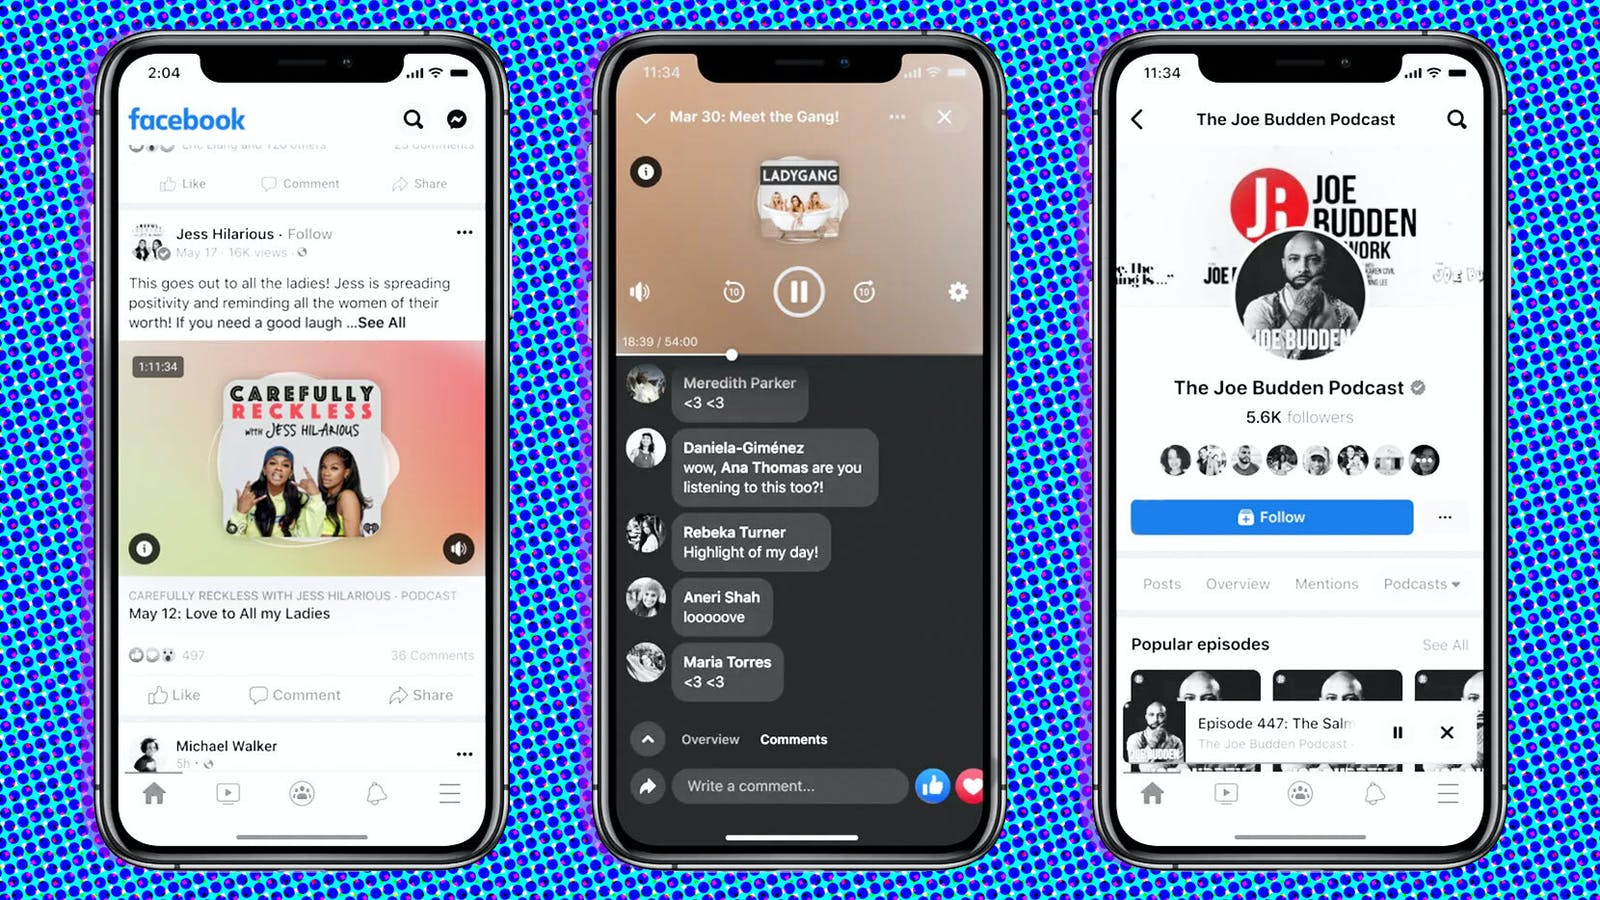 Views of Facebook's new podcast product. Photos courtesy of Facebook.